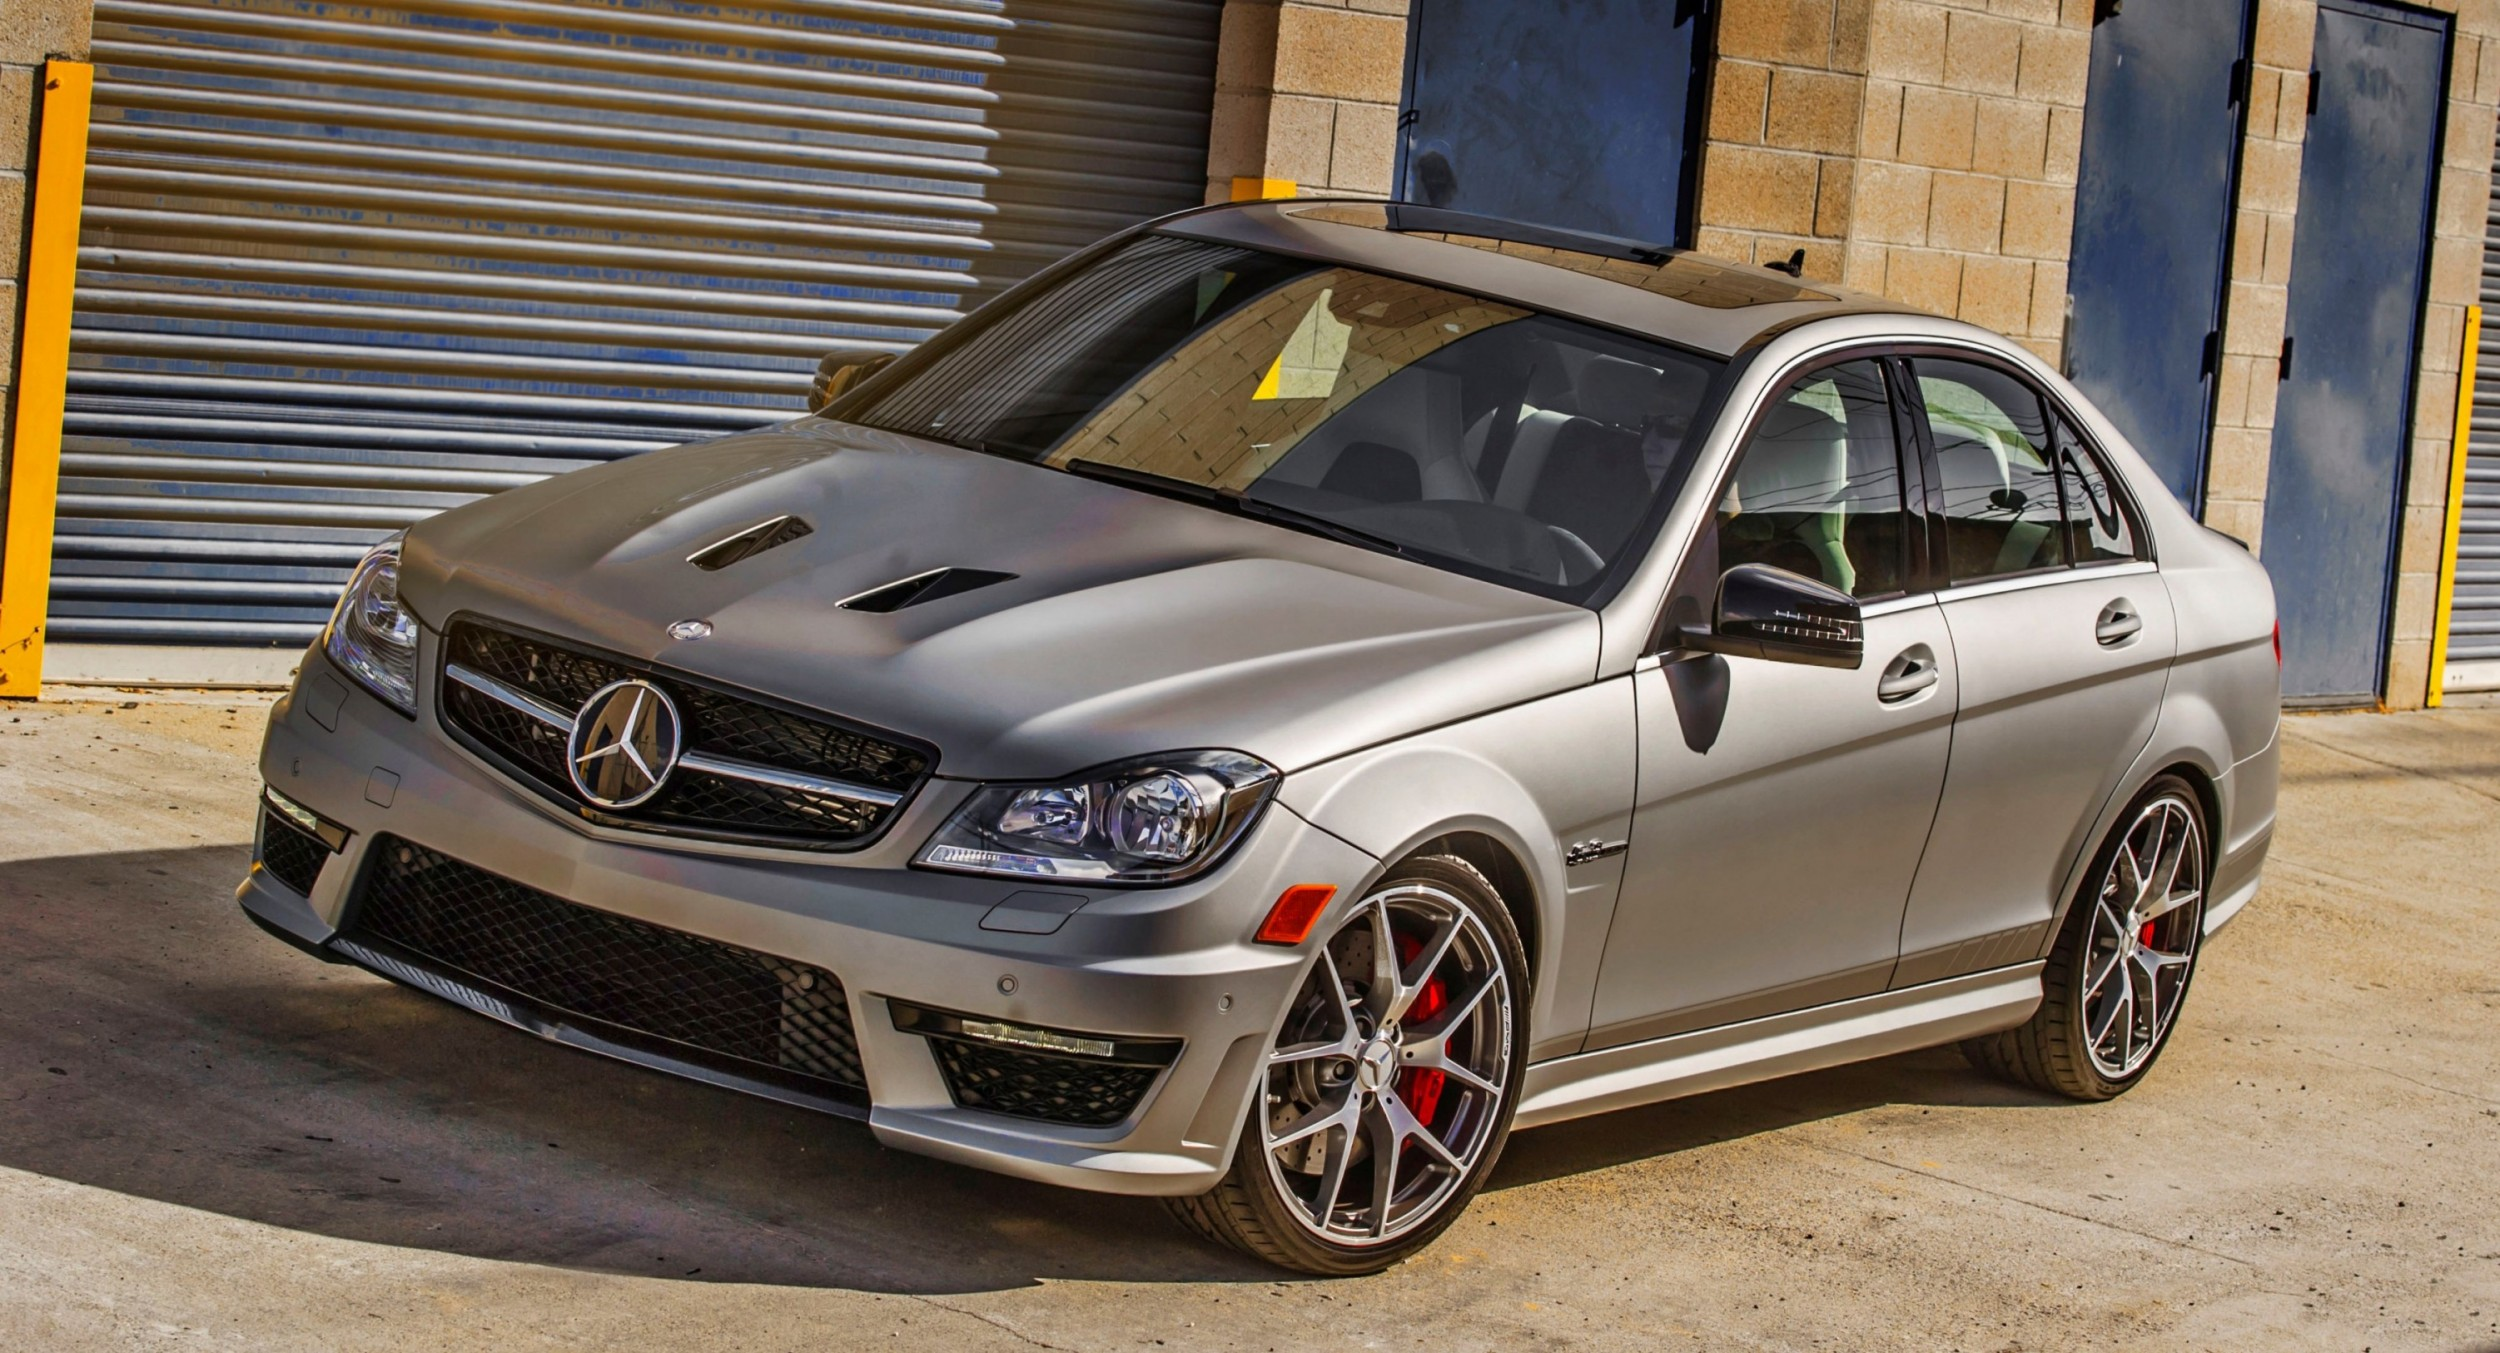 2014 c63 amg edition 507 sedan and coupe going out with v8. Black Bedroom Furniture Sets. Home Design Ideas